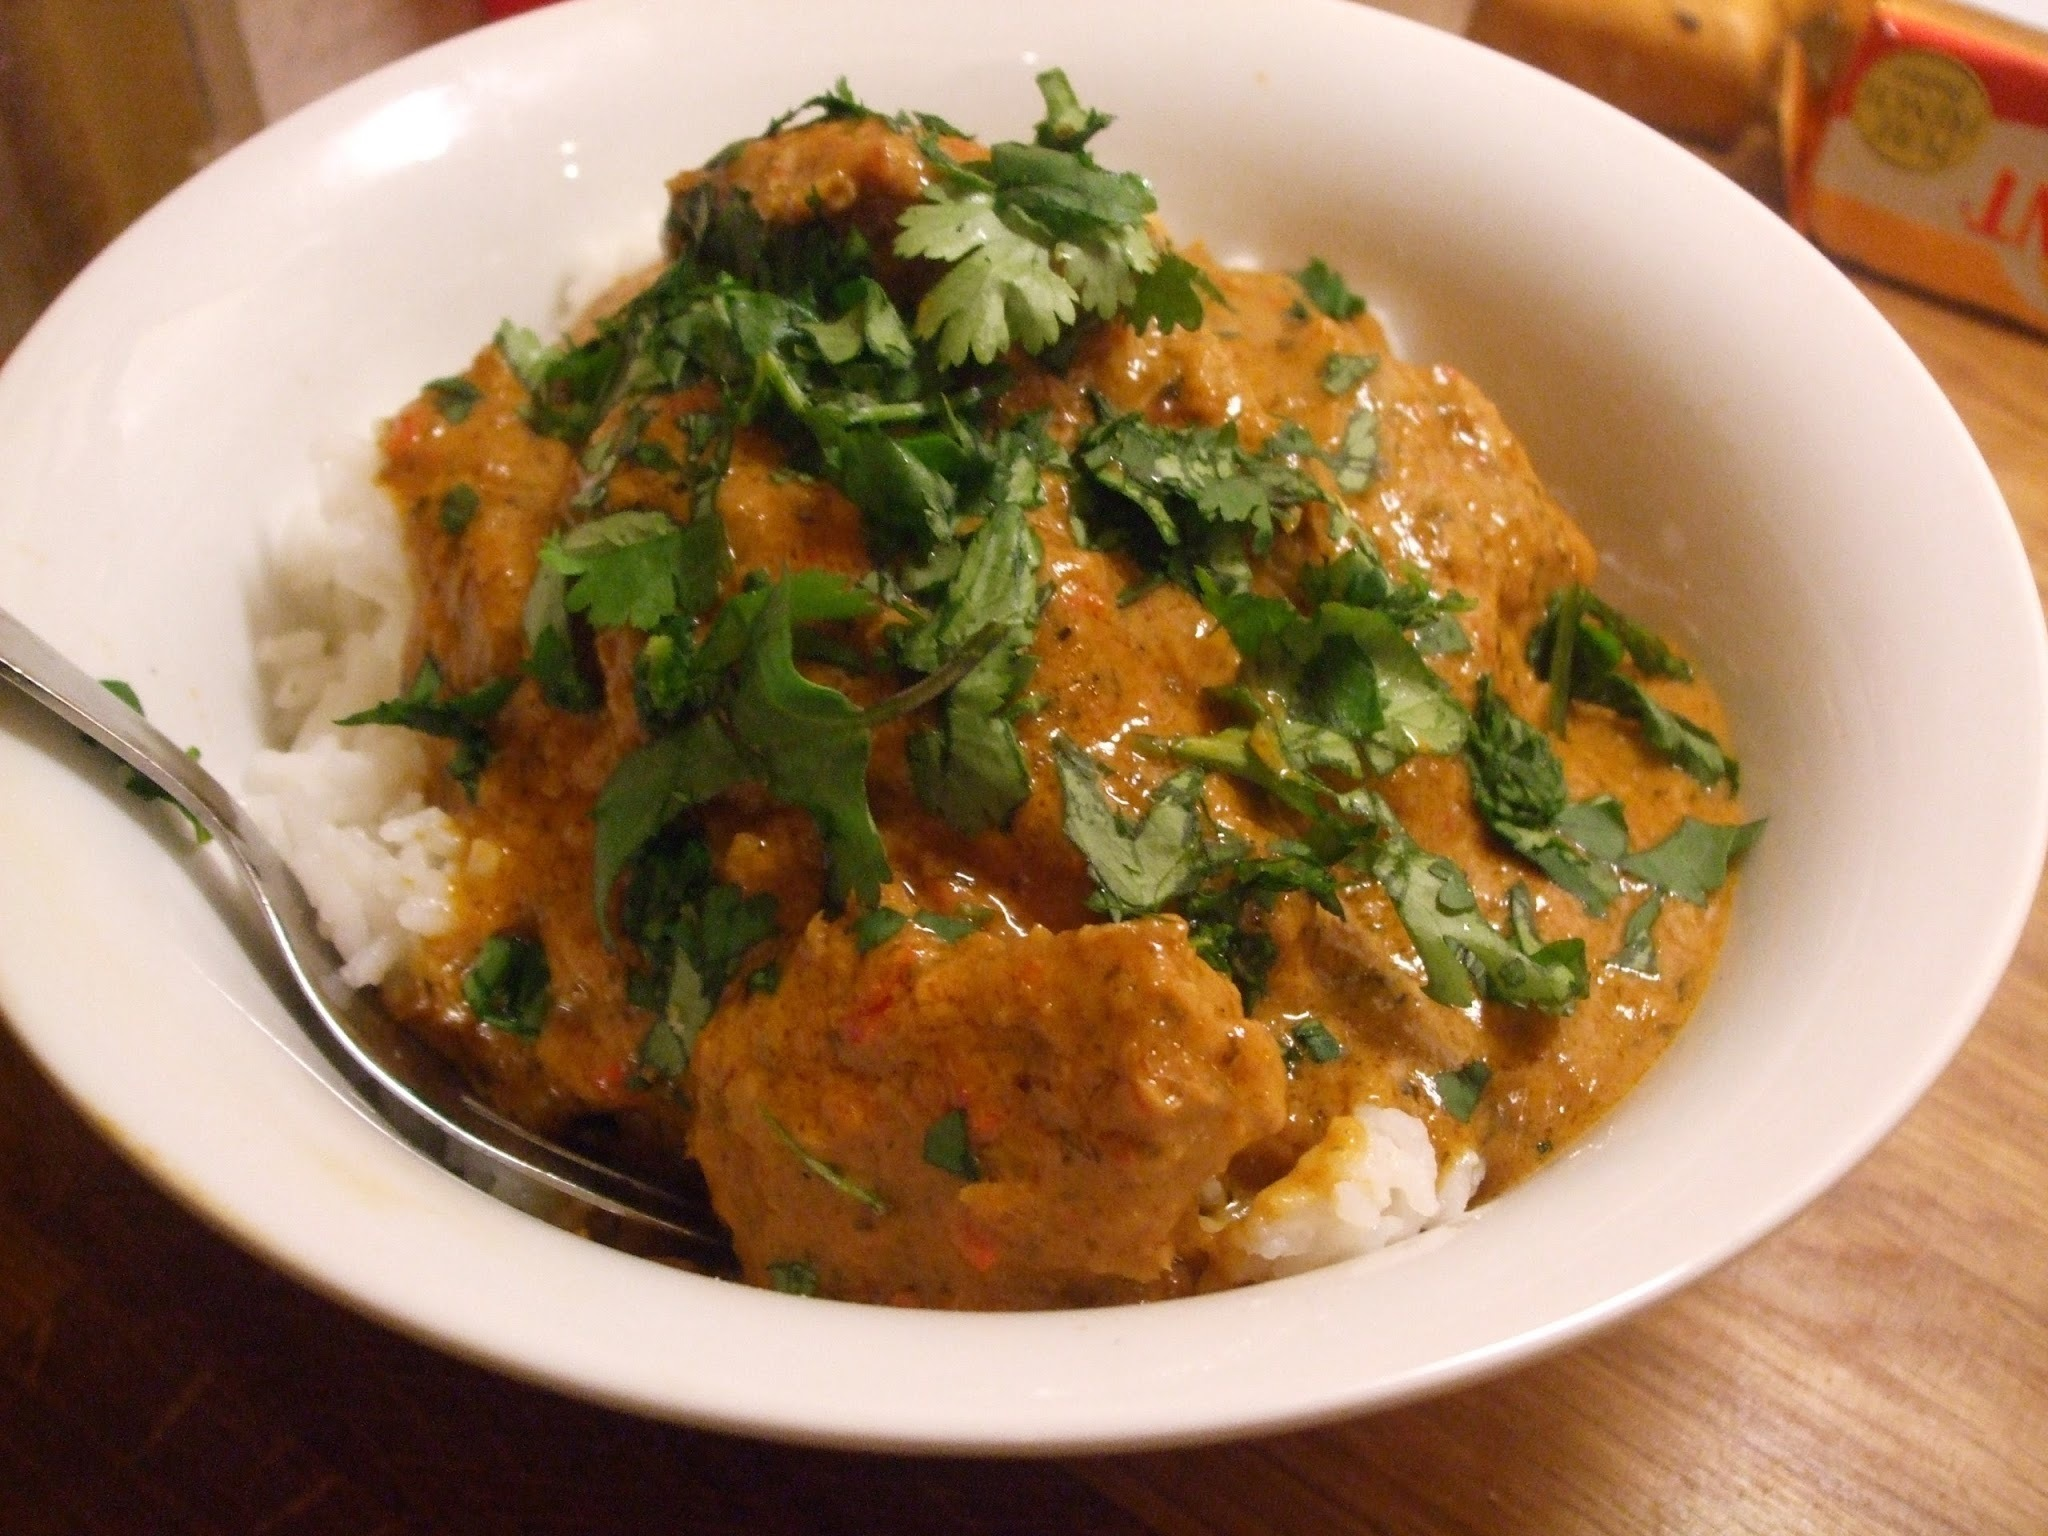 Thai - rrific: Nigel Slater's Coconut chilli (or chili) chicken